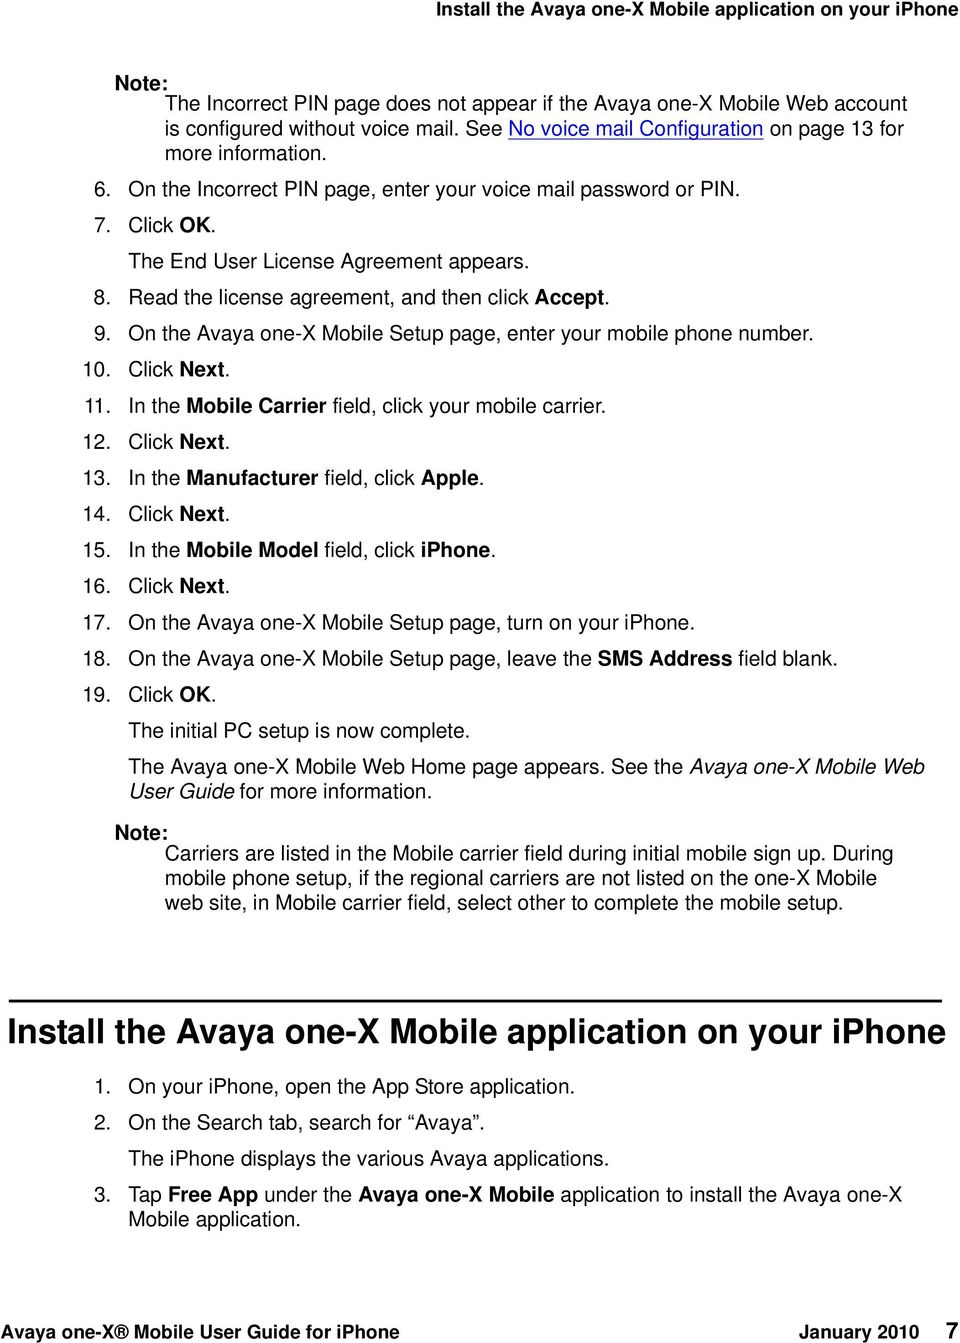 Read the license agreement, and then click Accept. 9. On the Avaya one-x Mobile Setup page, enter your mobile phone number. 10. Click Next. 11. In the Mobile Carrier field, click your mobile carrier.